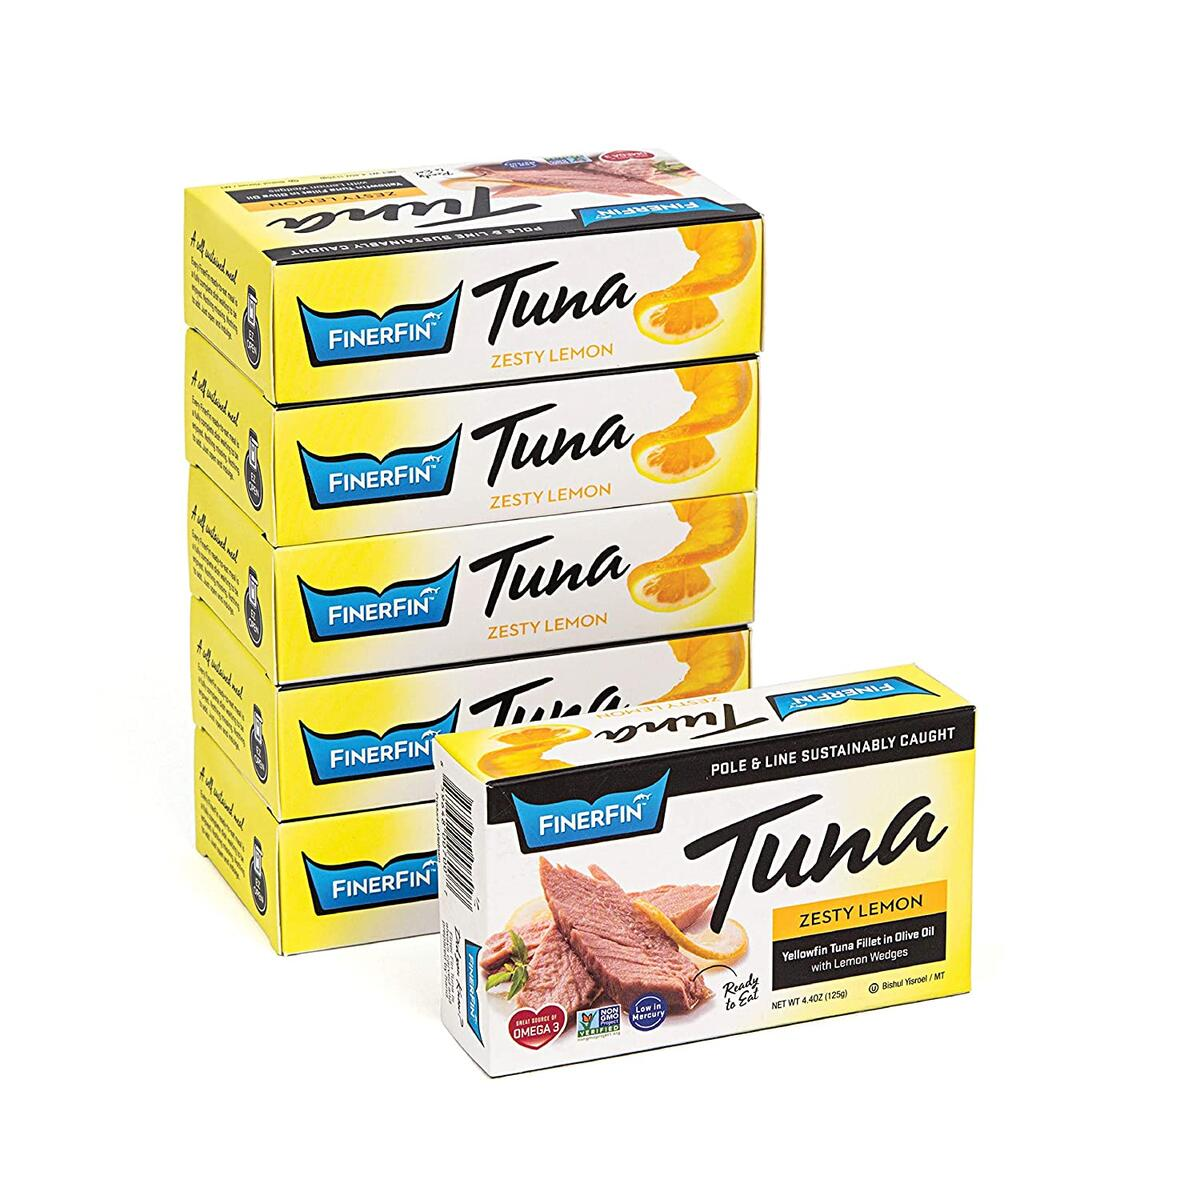 FinerFin Yellowfin Tuna In Organic Olive Oil – Zesty Lemon (4.4oz can - 6 Pack); Premium Canned Fish with EVOO, Keto Friendly, Gourmet Ready-to-Eat Fillets, Wild-Caught…